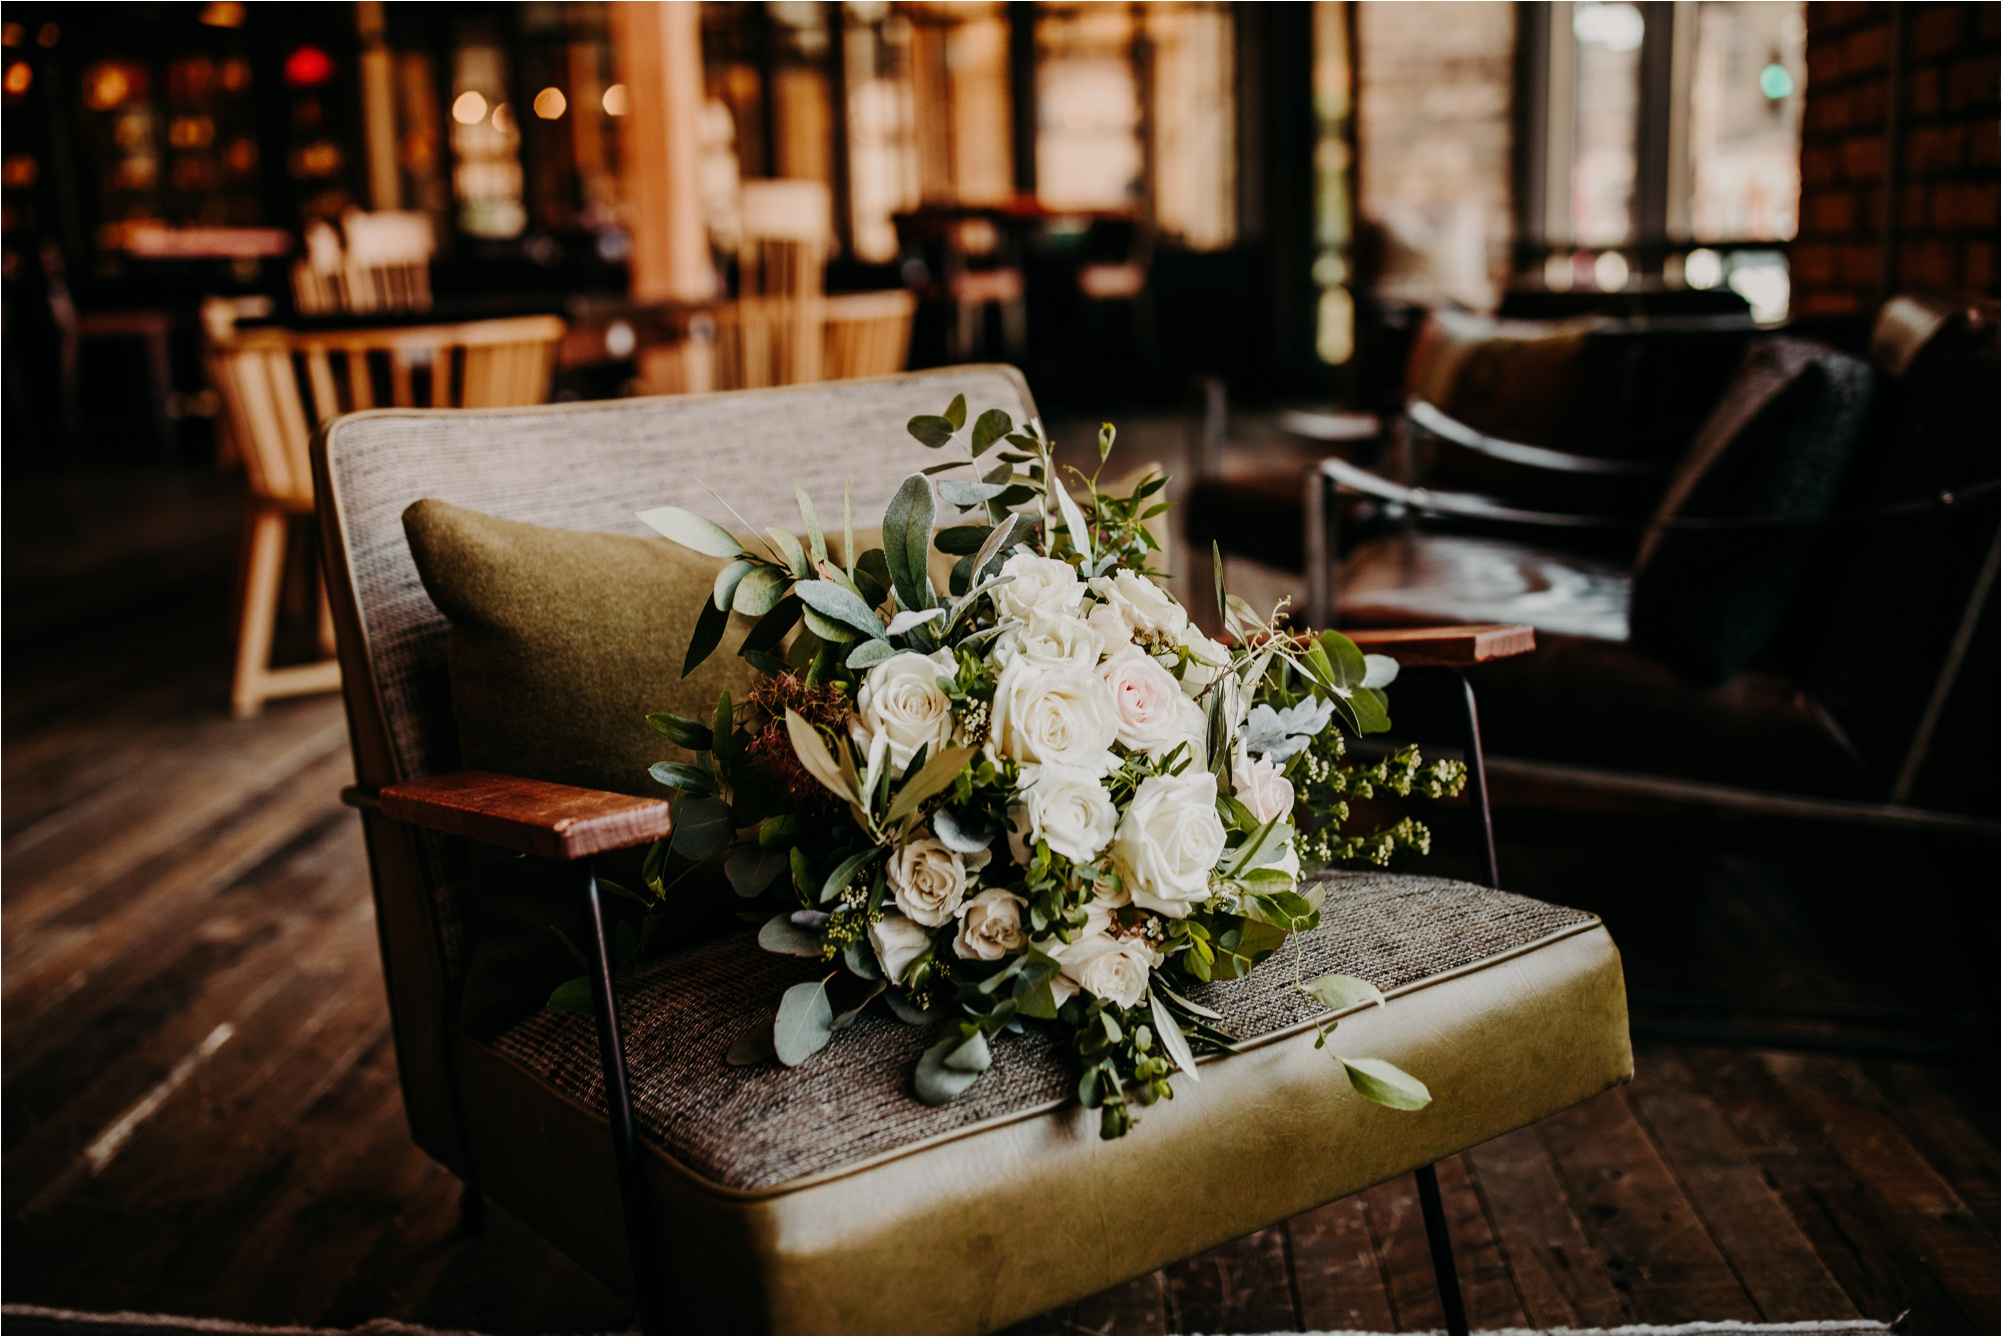 hewing hotel wedding getting ready space photography minneapolis minnesota wedding photographer